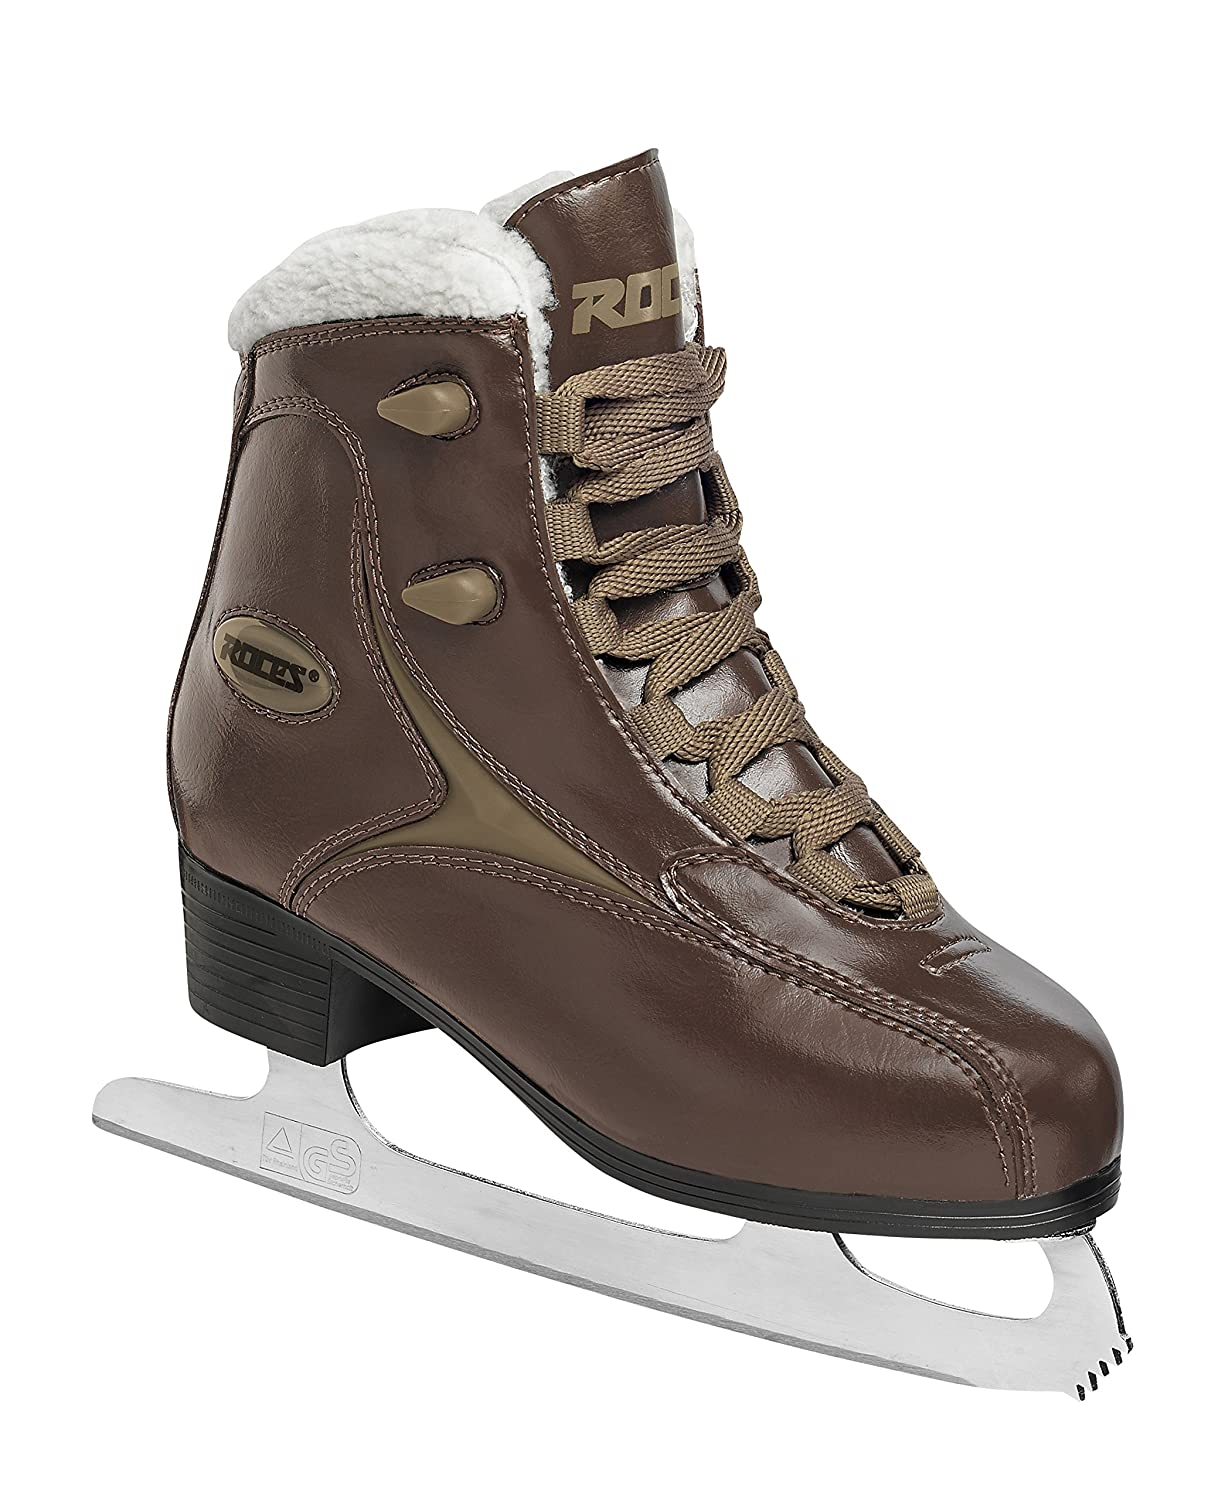 Roces Patines de hielo Rfg glamour ringneck 450540